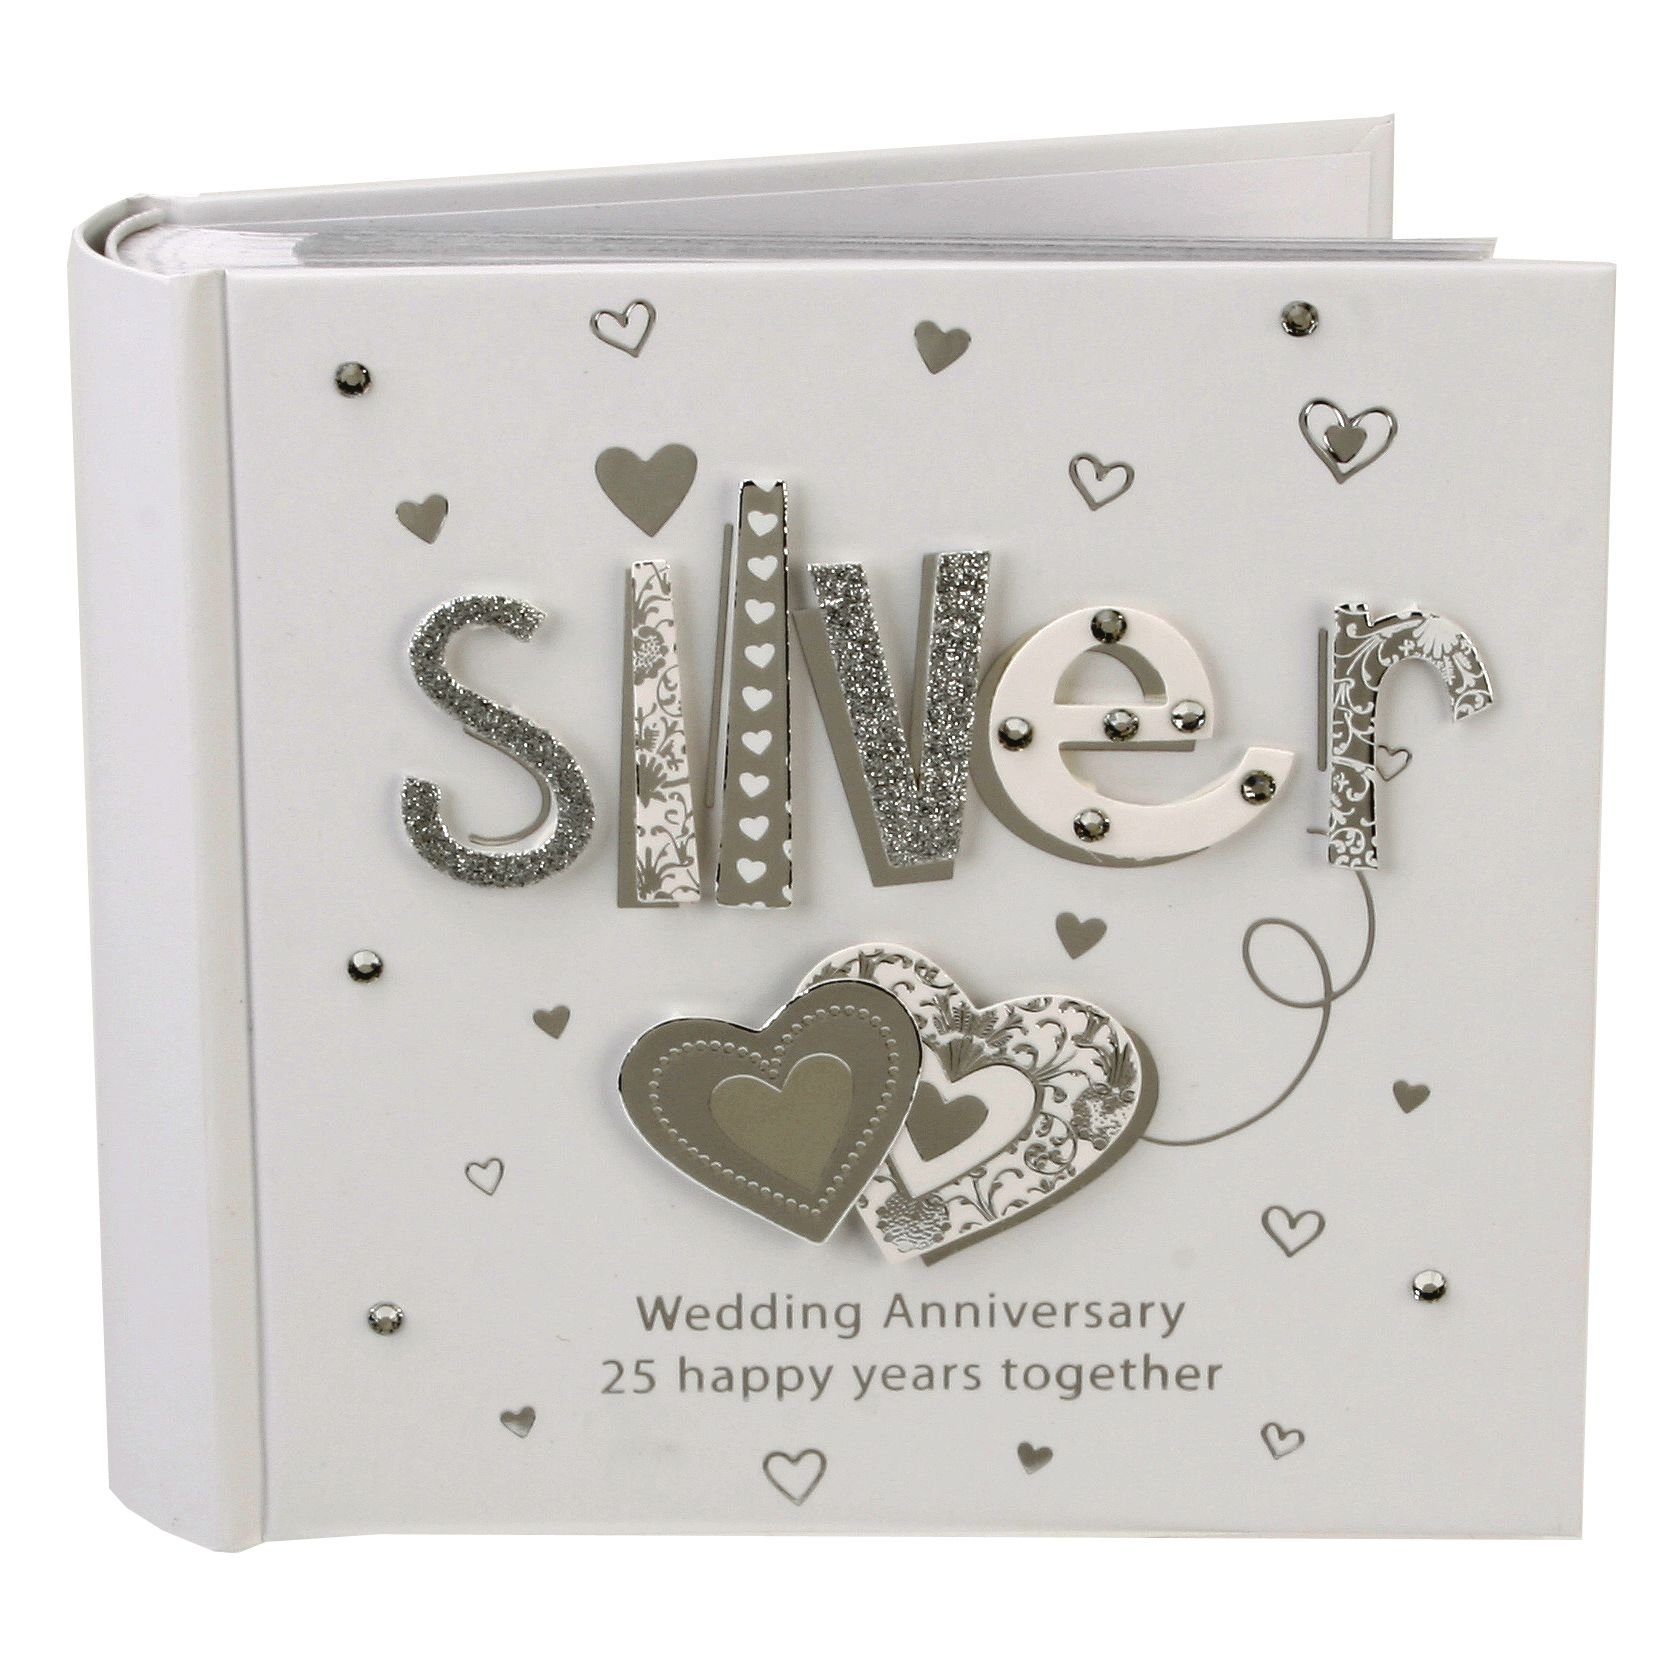 10 Elegant 25Th Anniversary Ideas For Parents wedding anniversary gifts 25th wedding anniversary gifts for parents uk 4 2020